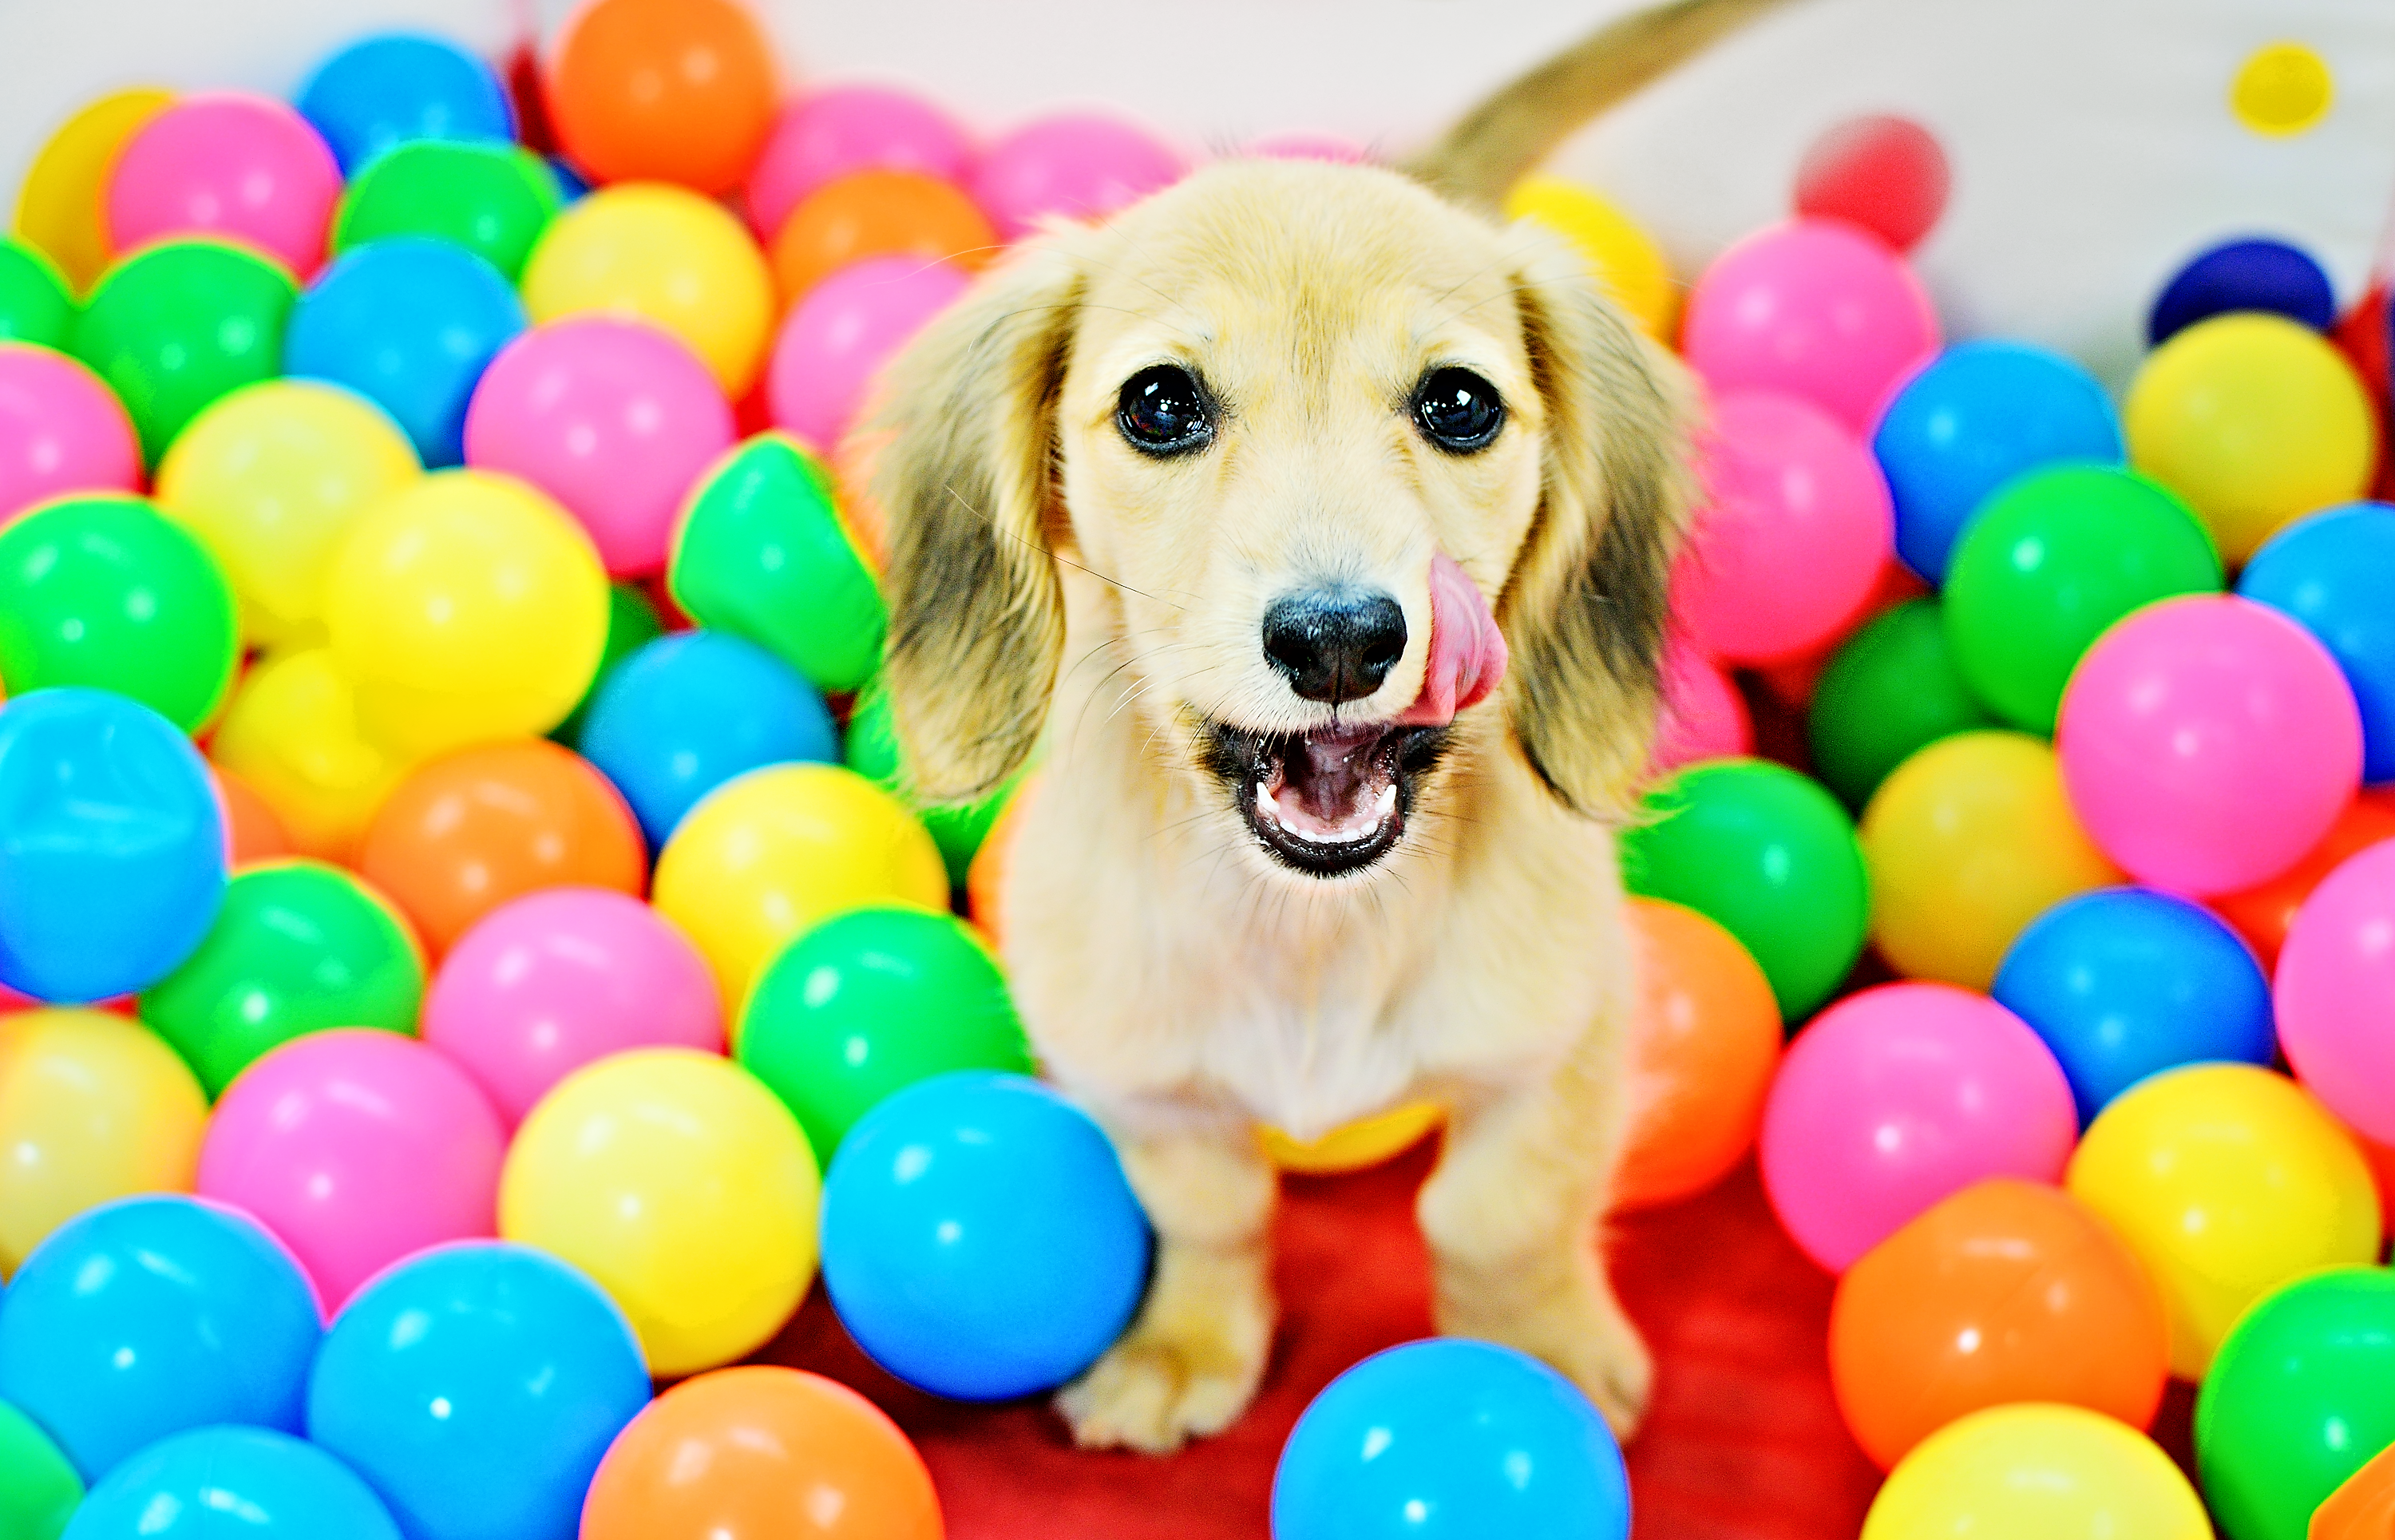 Dachshund puppy in the enrichment ball pit during her puppy training program.